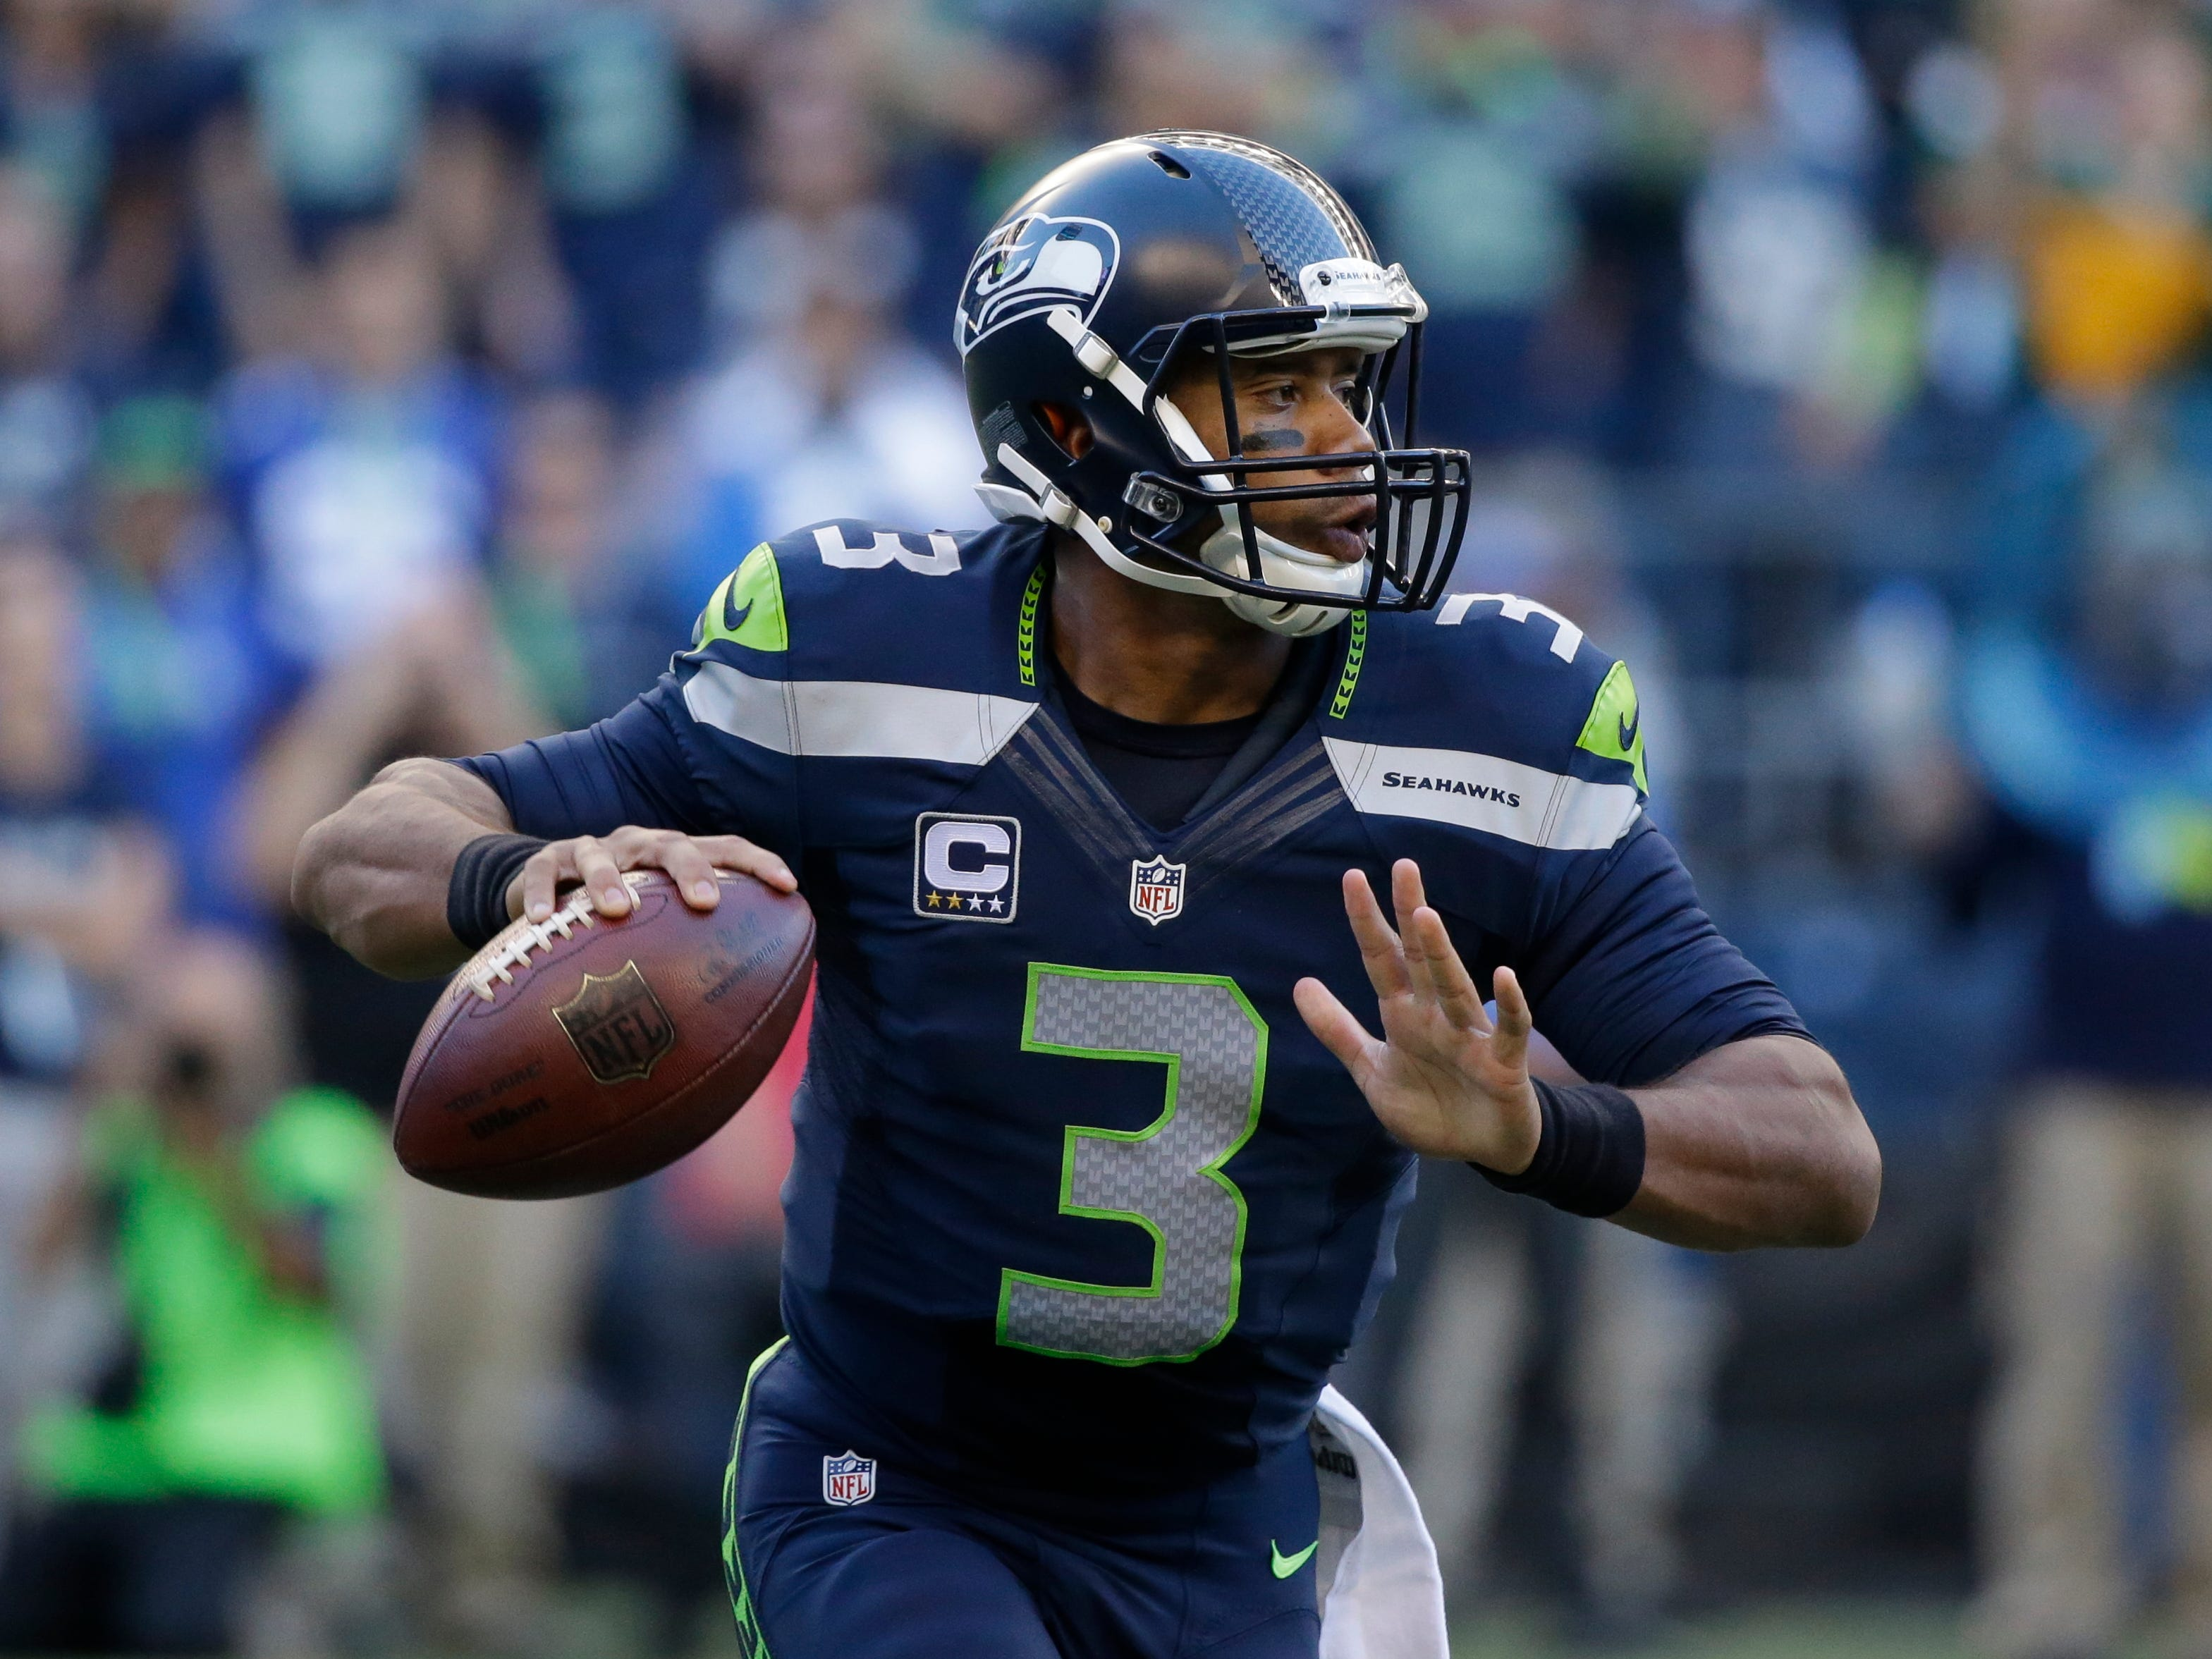 Fewer fans tuned in Thursday than in 2013 to watch Russell Wilson's Seahawks in the NFL season opener.